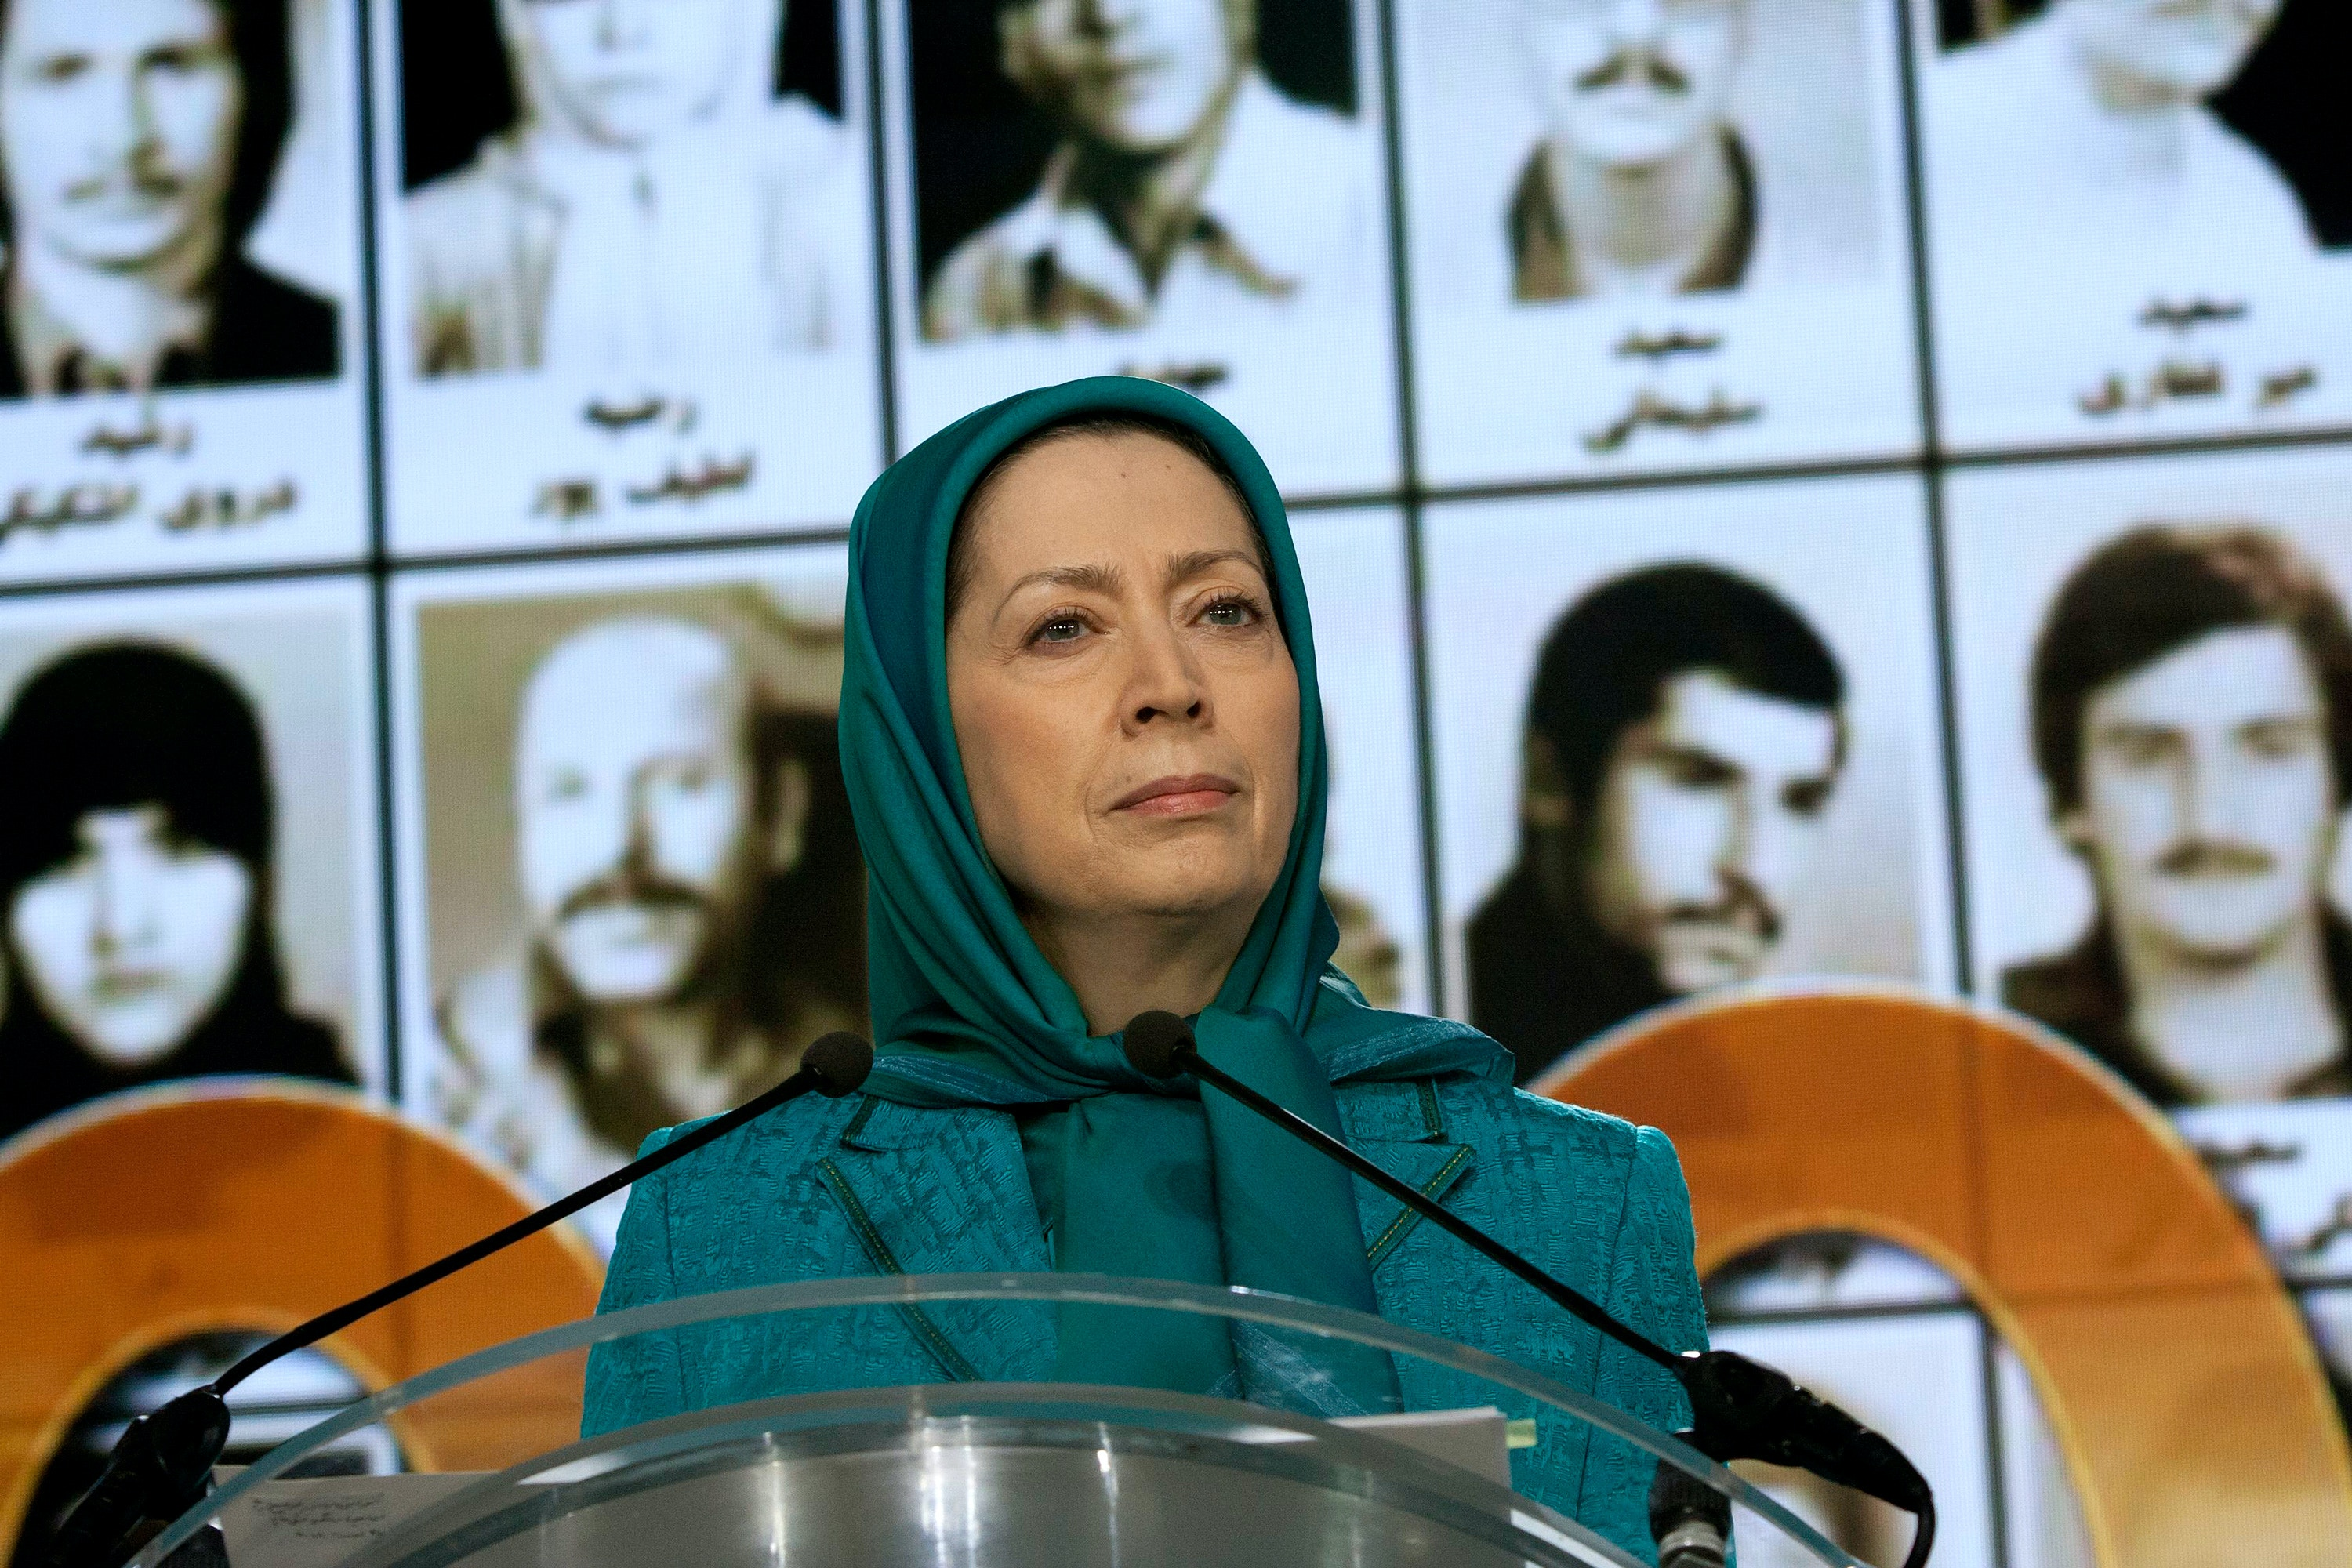 Maryam Rajavi, Auvers-sur-Oise, France 25/08/2018 - A global video conference was held by Iranian communities on Saturday, August 25, 2018, on the 30th anniversary of the 1988 massacre of 30,000 political prisoners in Iran. Maryam Rajavi, the NCRI's President-elect reiterated that the clerical regime's spies and mercenaries must be expelled from western countries and all relations must be terminated with the regime which takes advantage of diplomatic resources to promote state-sponsored terrorism, and its embassies must be shut down. Siavosh Hosseini/TME/SIPA (Sipa via AP Images)